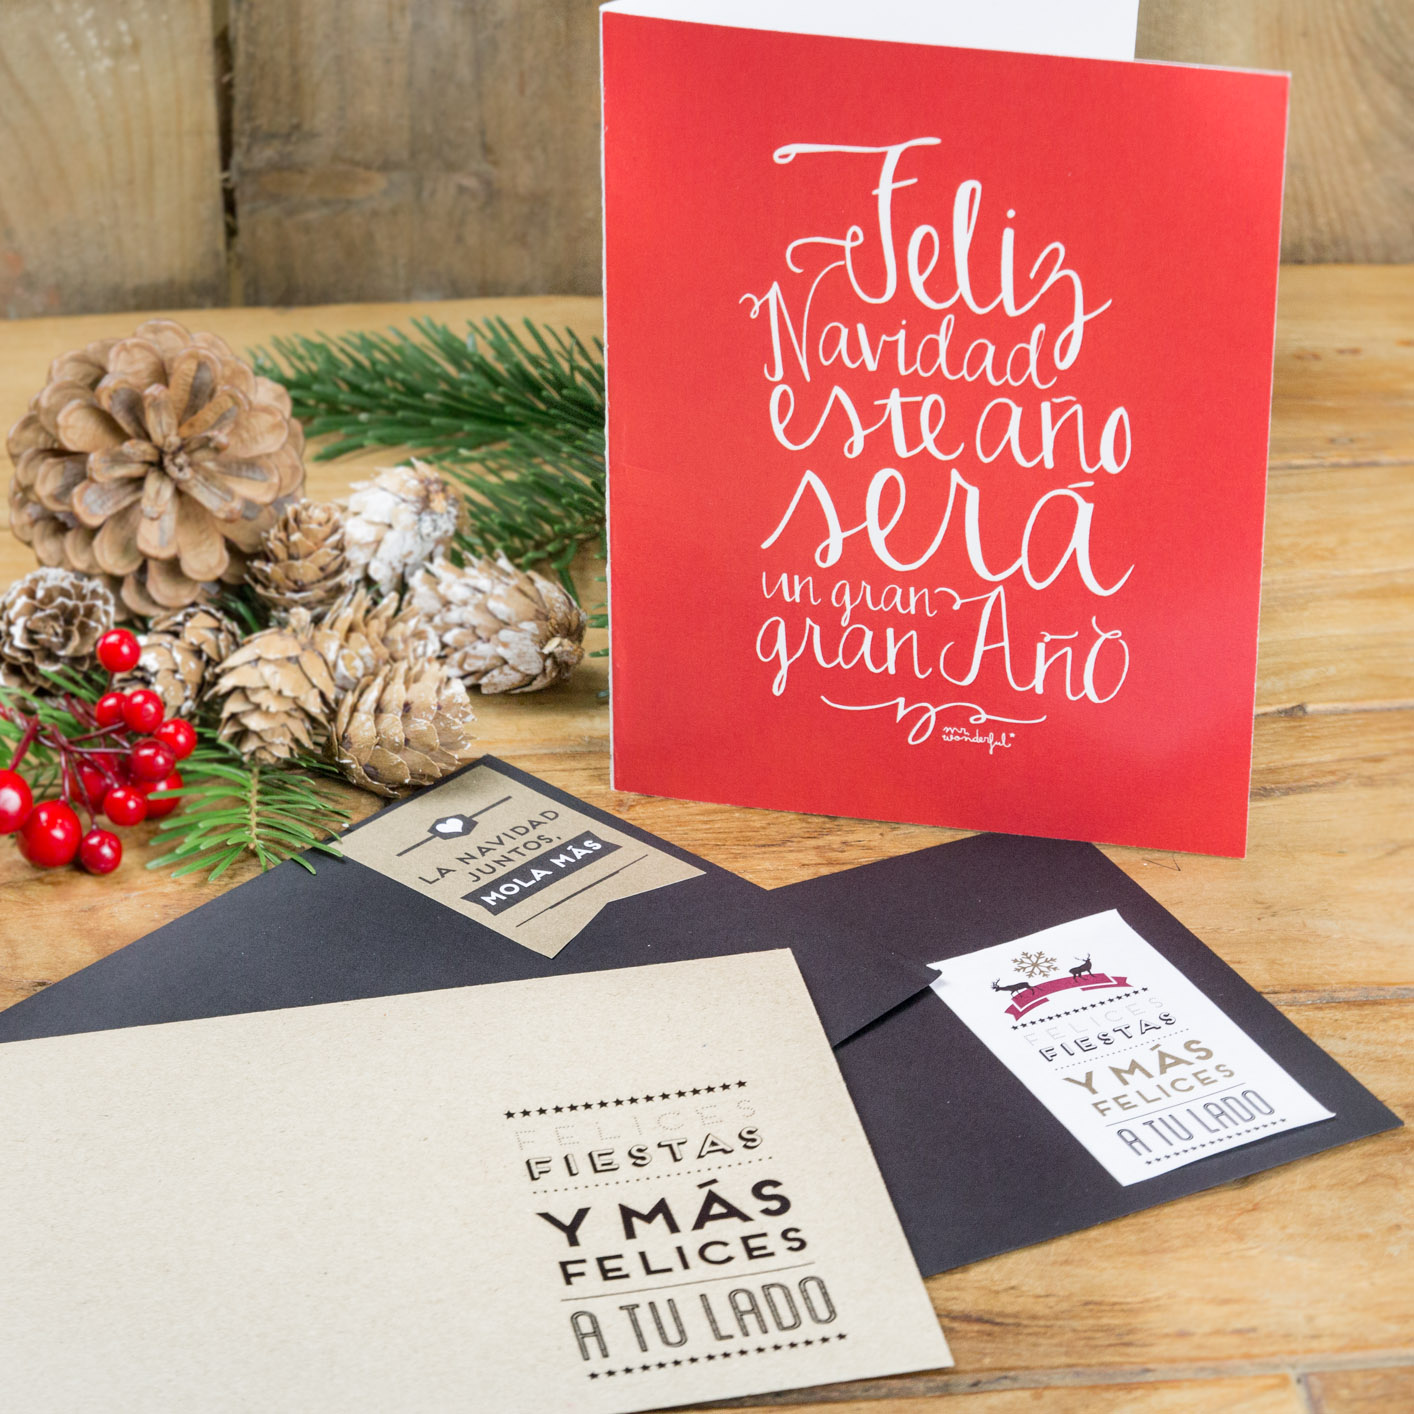 mr_wonderful_tutorial_descargable_freebie_postal_felicitacion_navidad_01